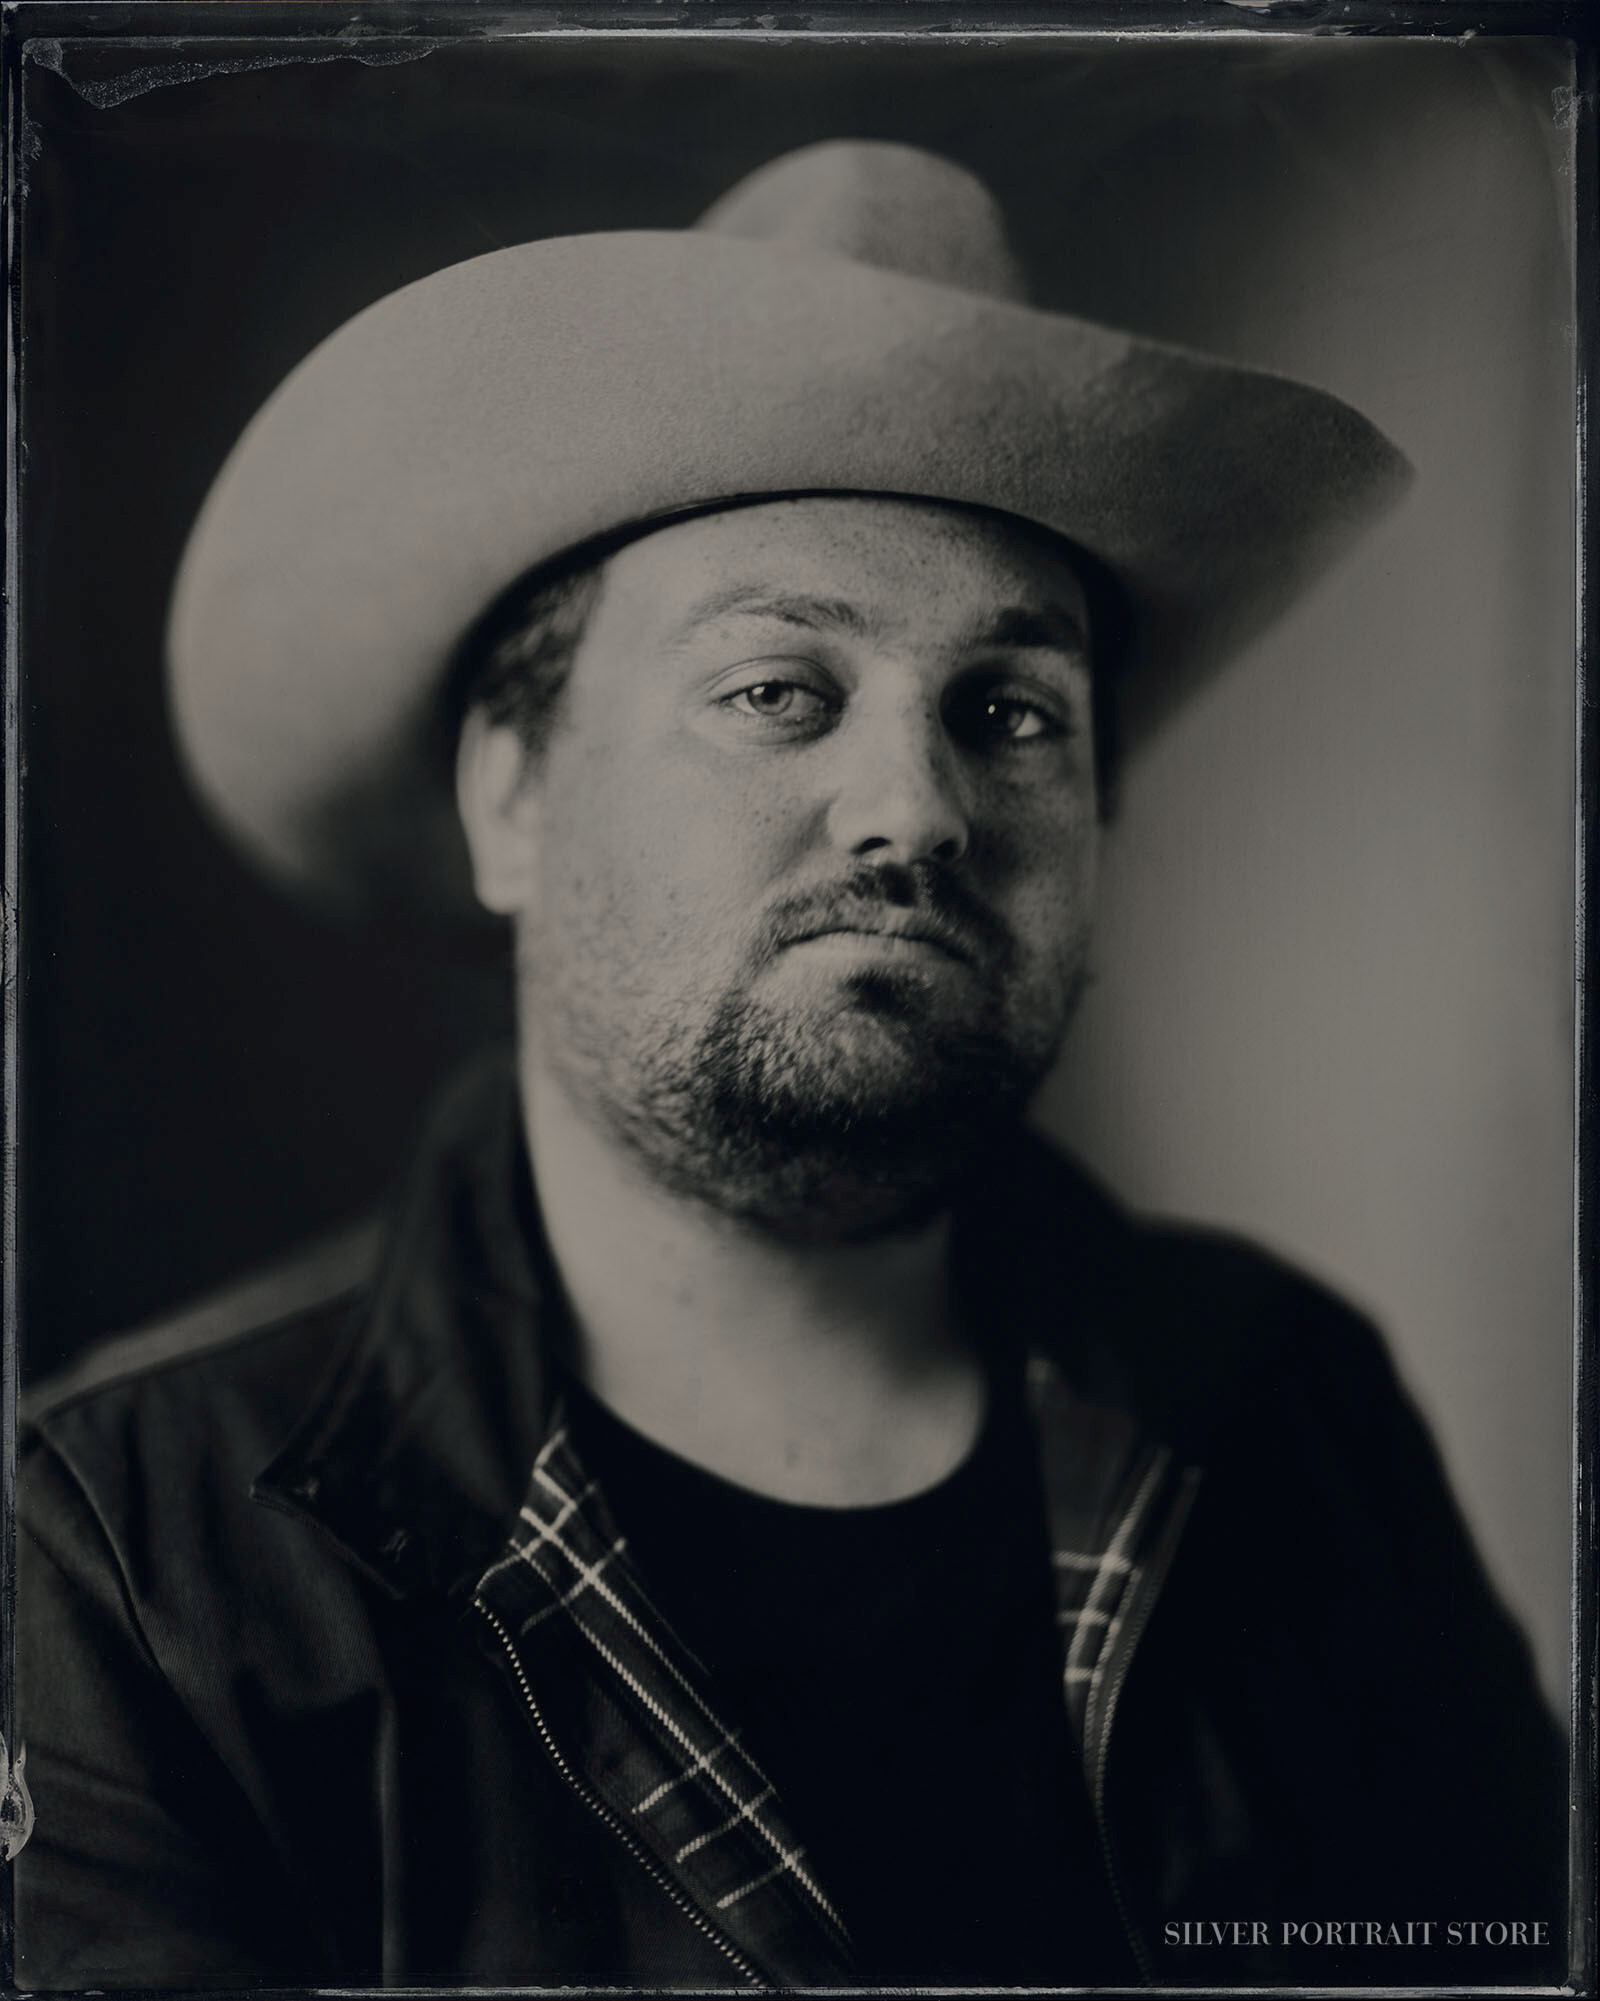 Tim Knol-Musician-Silver Portrait Store-Scan from Wet plate collodion-Tintype 20 x 25 cm.